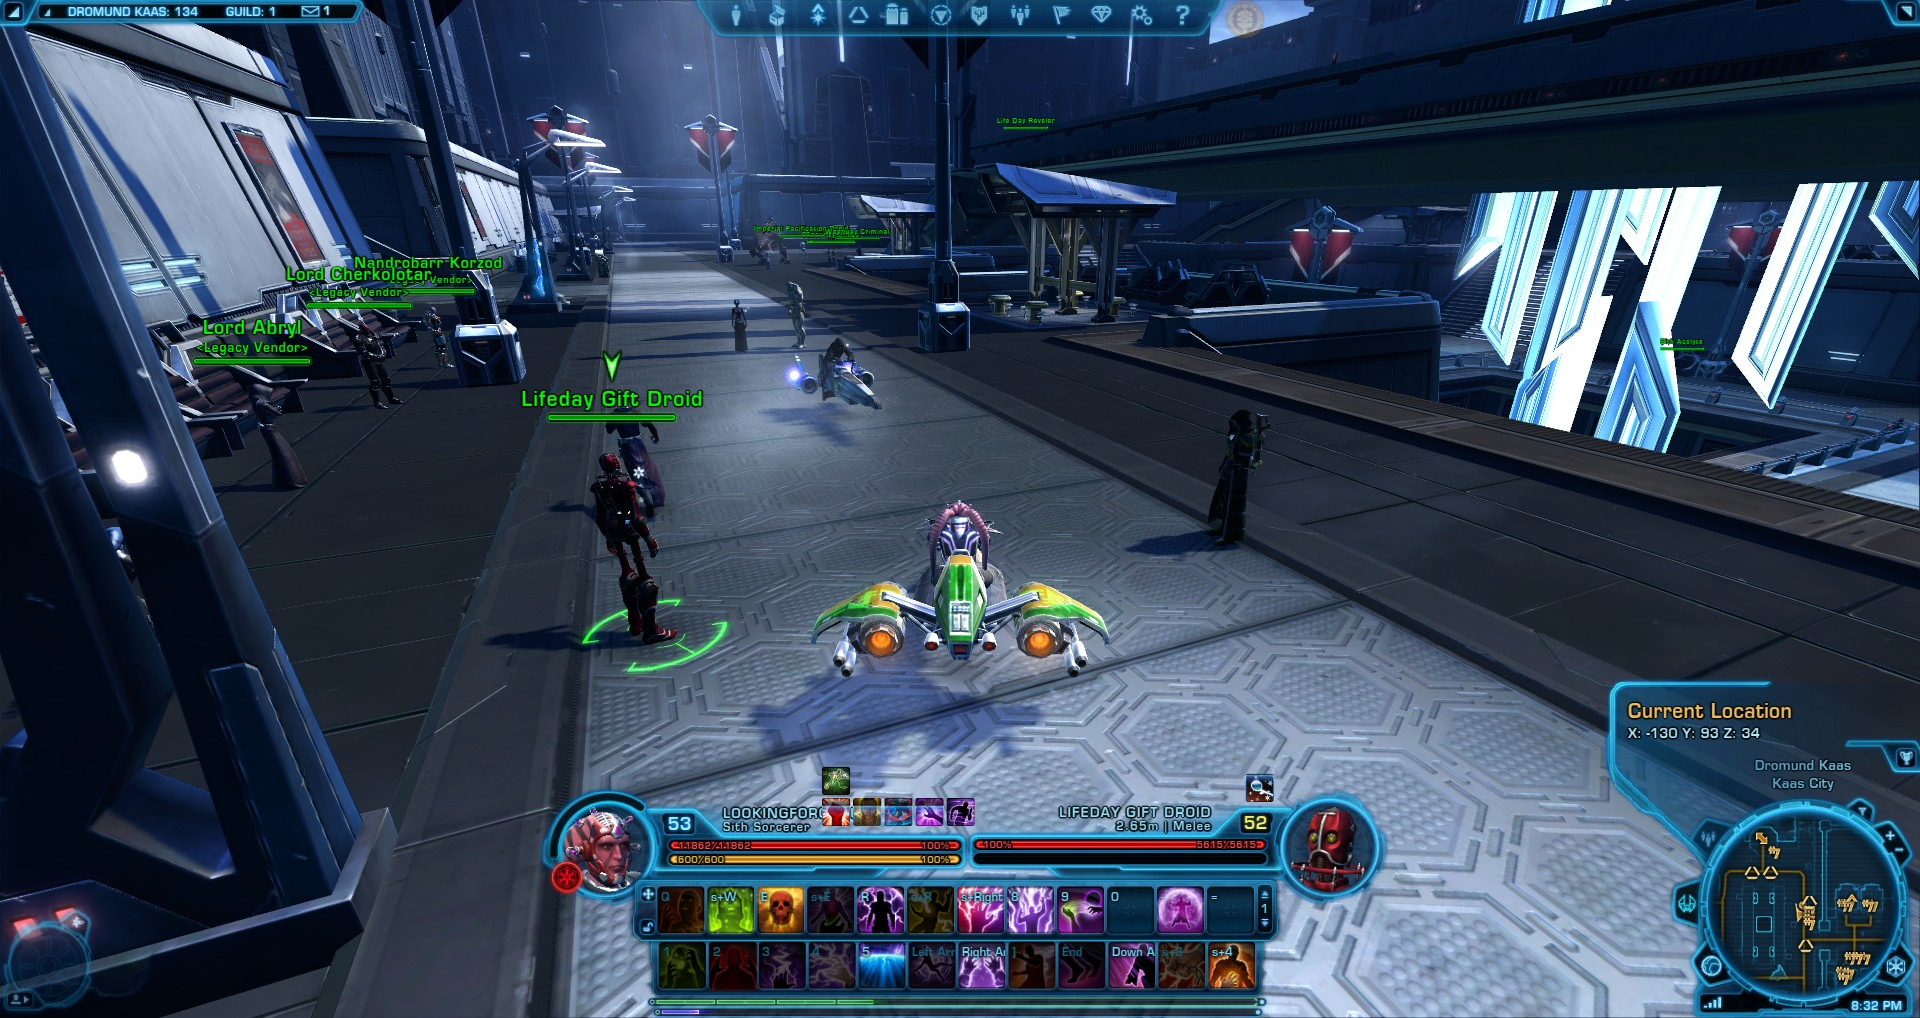 Swtor Life Day Event Dromund Kaas Overheated Gift Droids Location